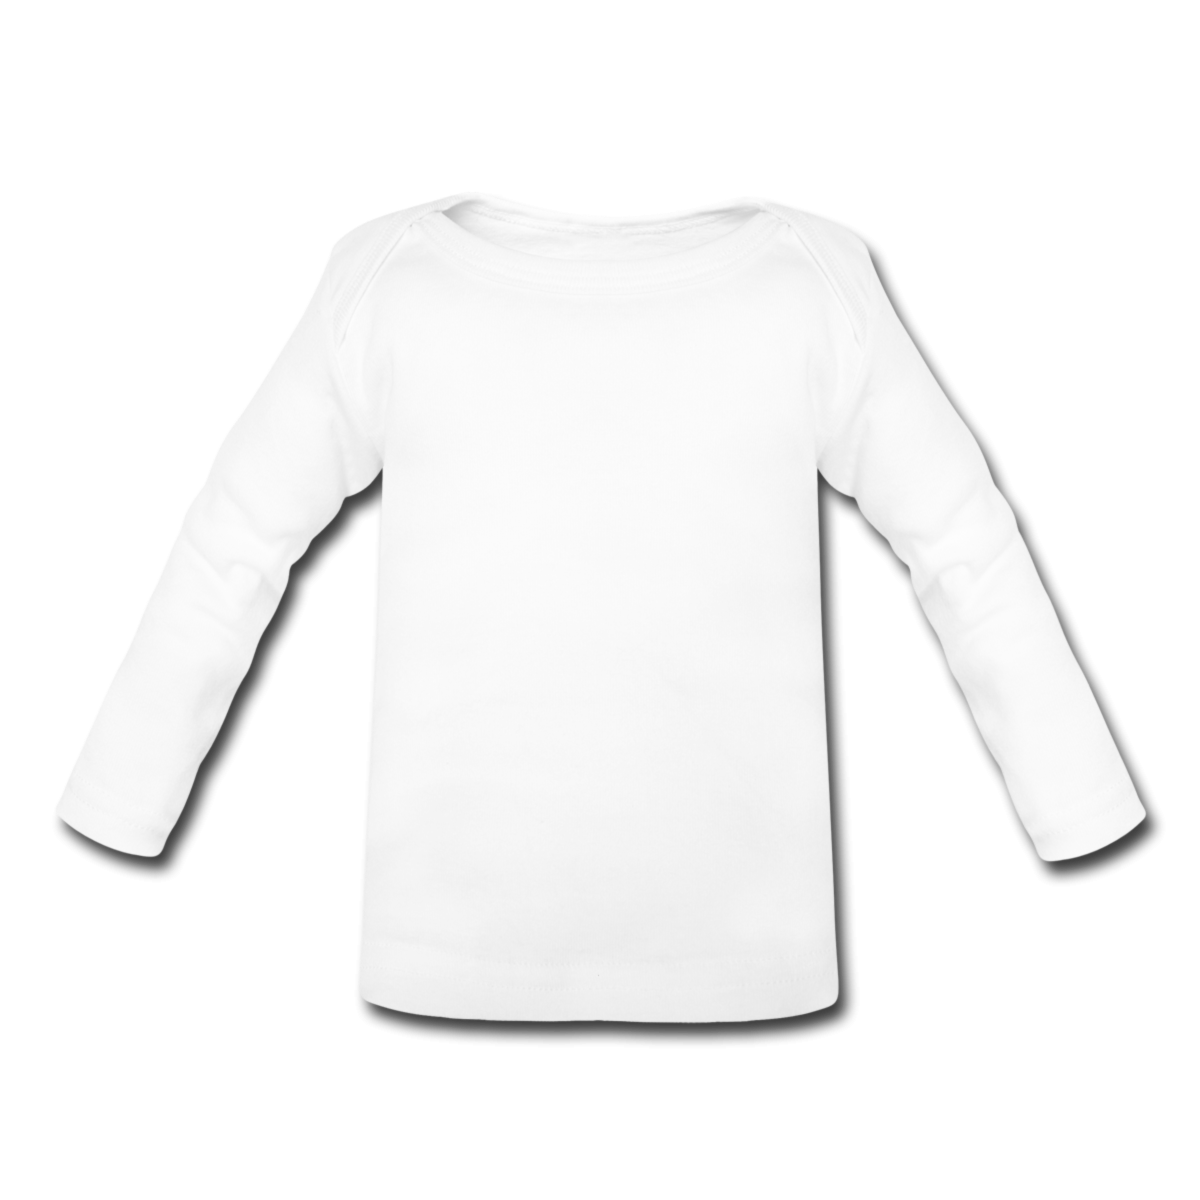 Baby t shirt clipart clipart suggest for Blank long sleeve shirt